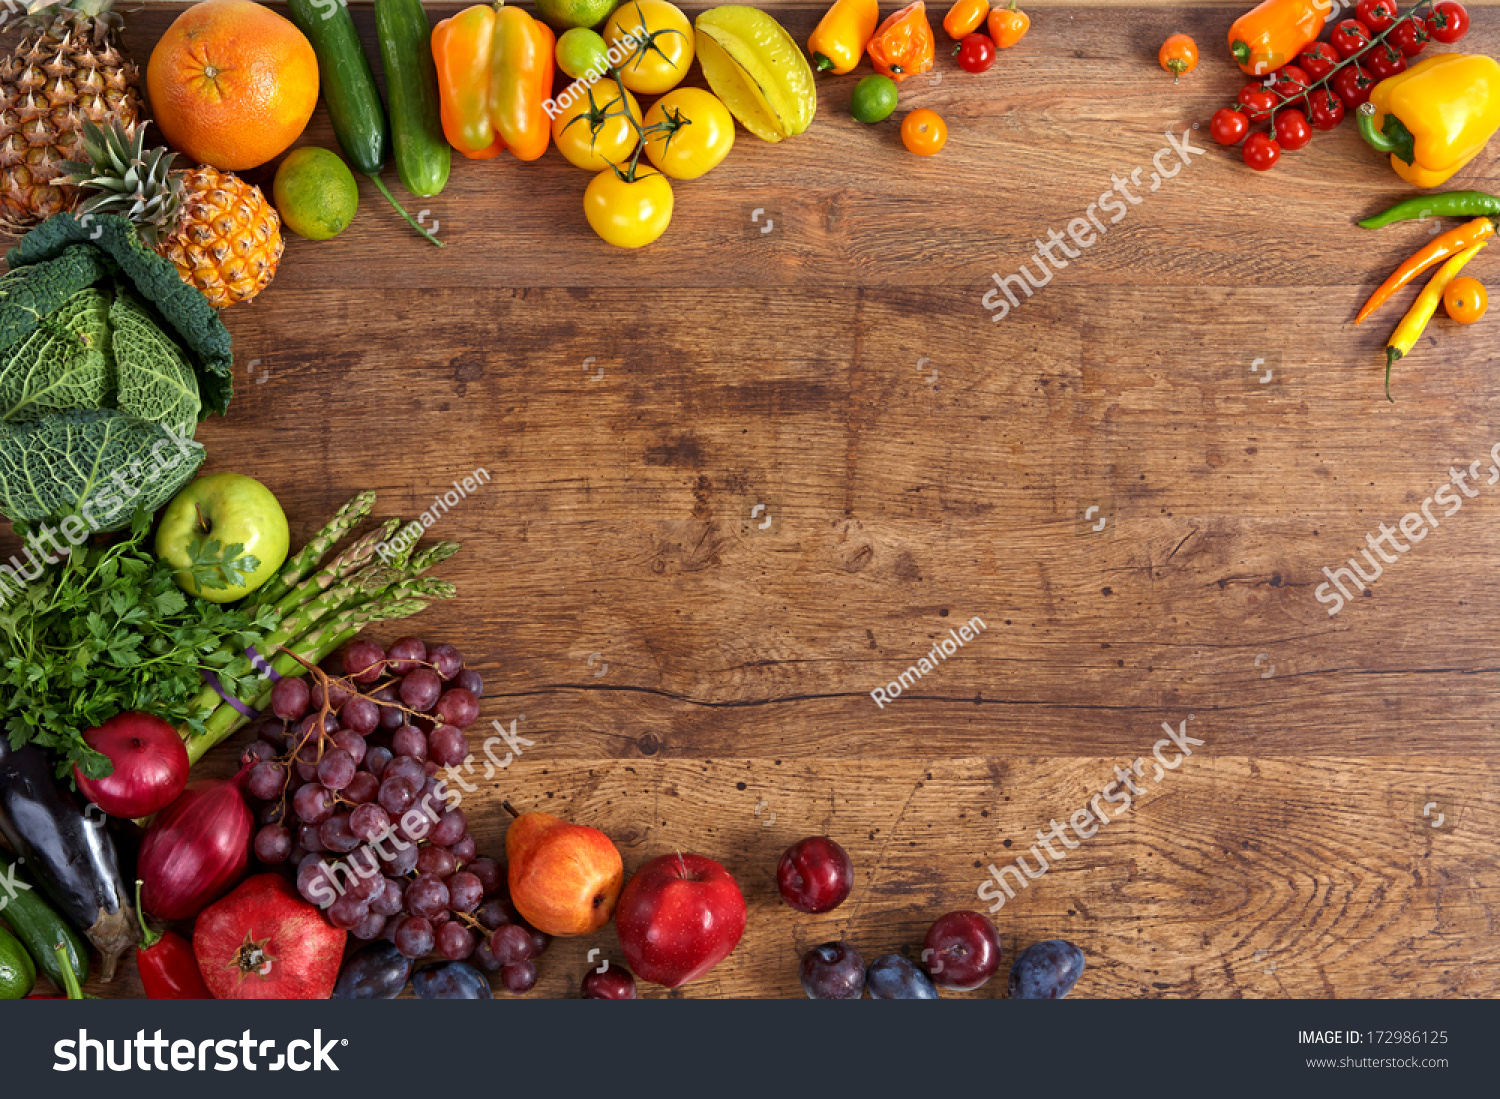 Food background studio photo of different fruits and vegetables - Healthy Eating Background Studio Photography Of Different Fruits And Vegetables On Old Wooden Table